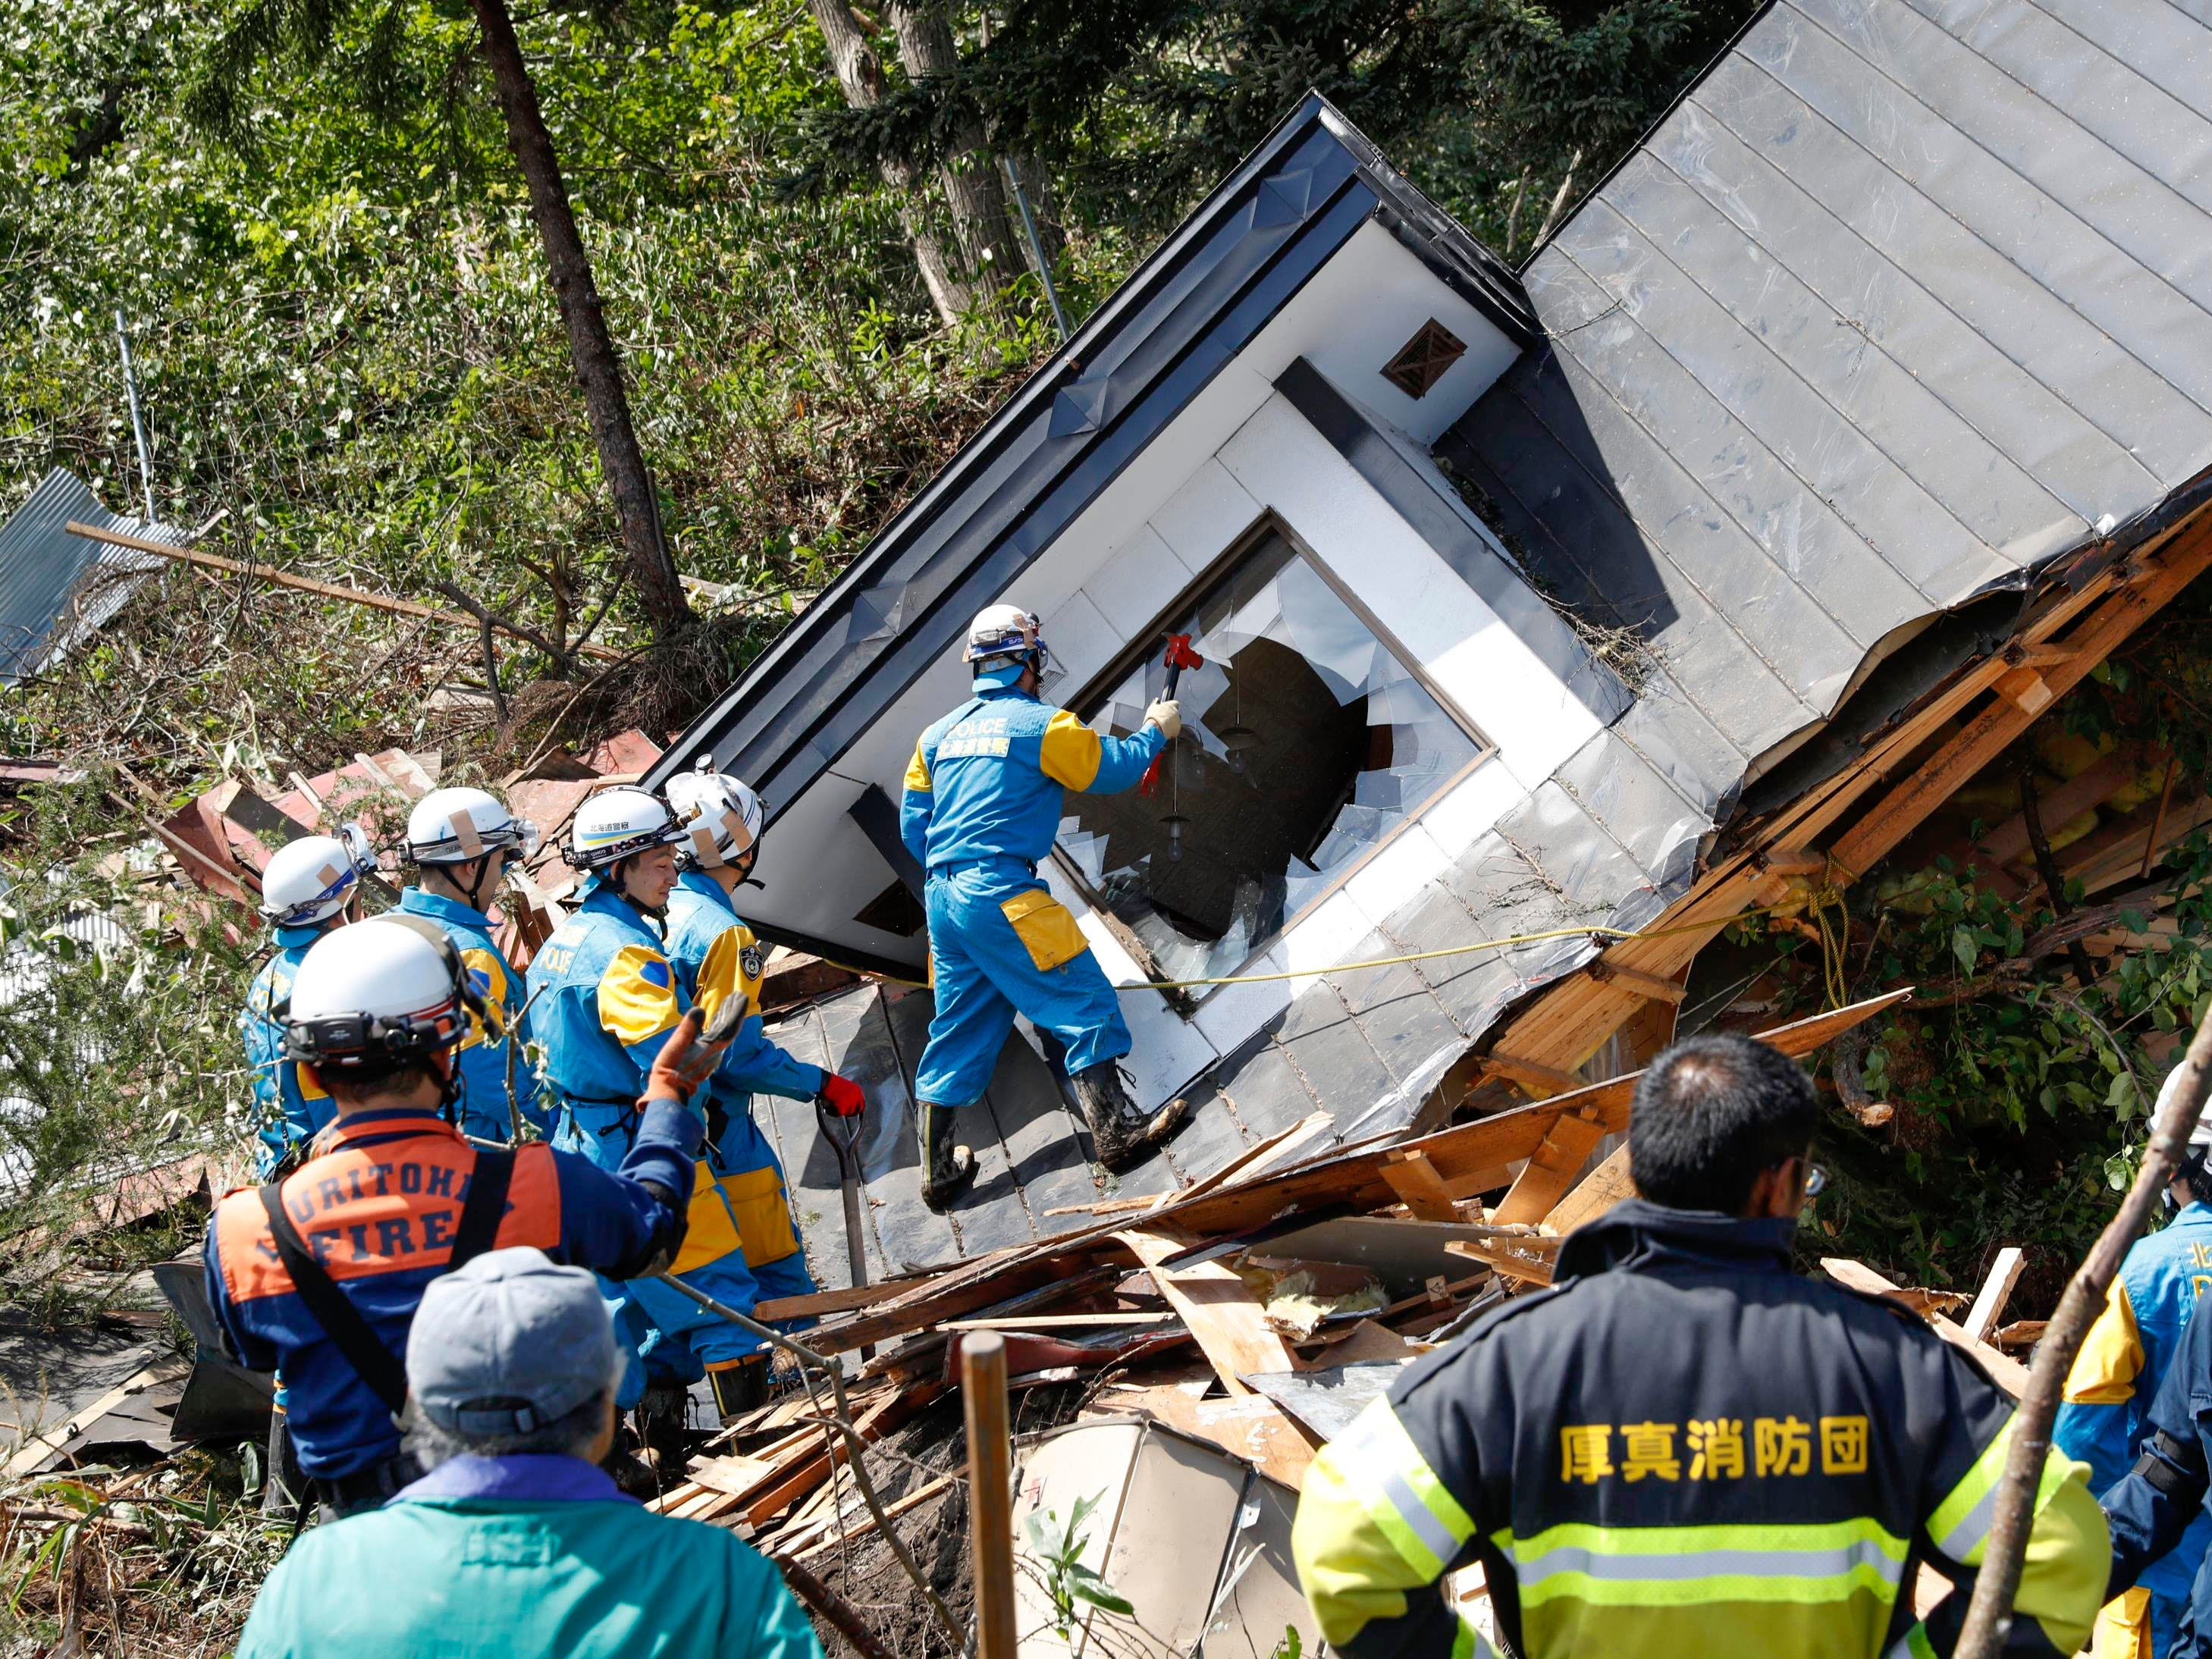 Police, in blue with yellow uniform, search for missing persons around a house destroyed by a landslide after a powerful earthquake in Atsuma town, Hokkaido, northern Japan, Sept. 6, 2018. Several people were reported missing in the nearby the town, where a massive landslide engulfed homes in an avalanche of soil, rocks and timber.